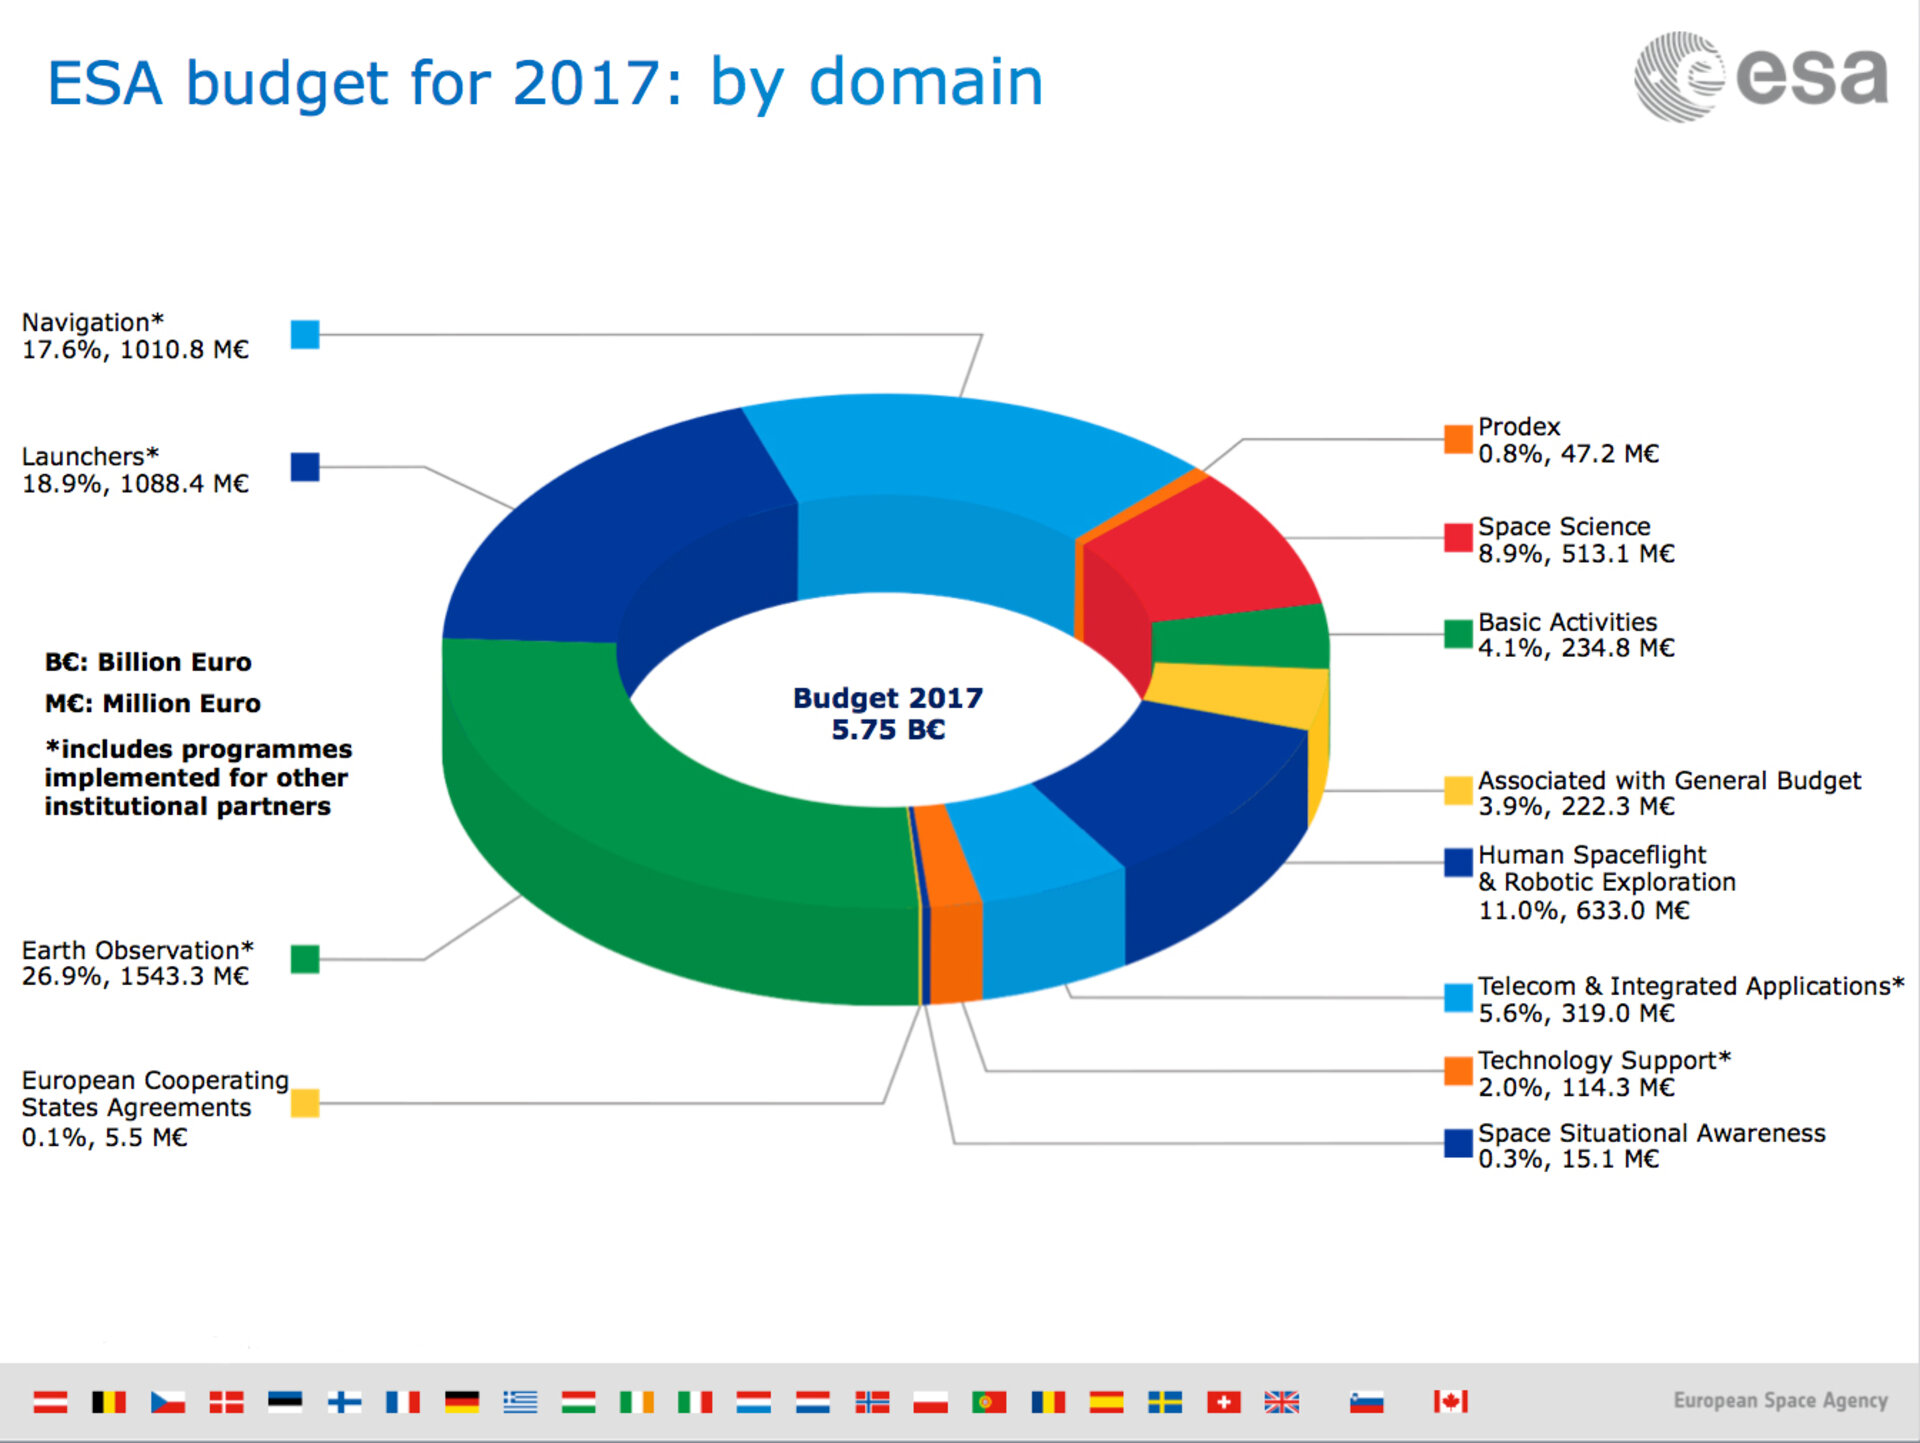 ESA budget 2017: by domain